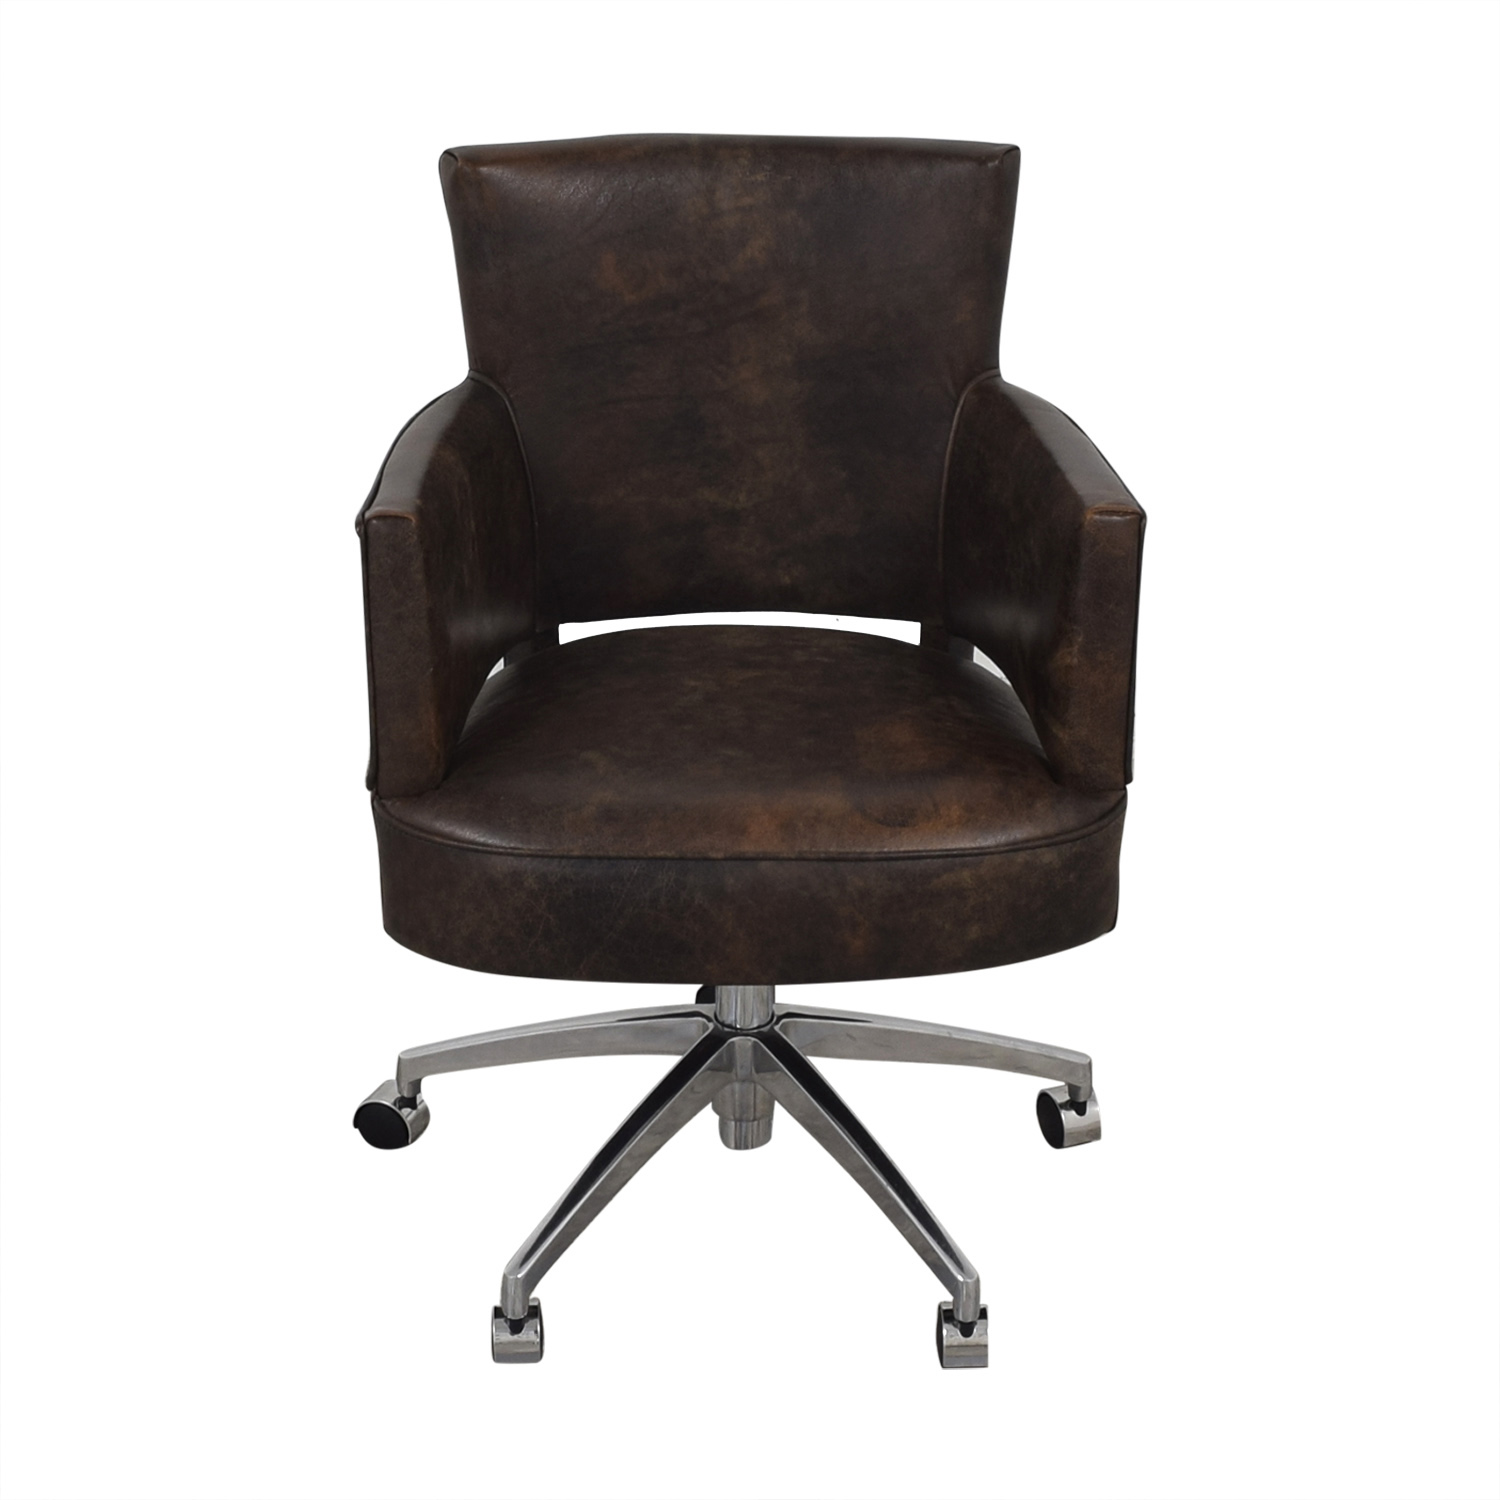 72 Off Timothy Oulton Timothy Oulton Swinderby Chair